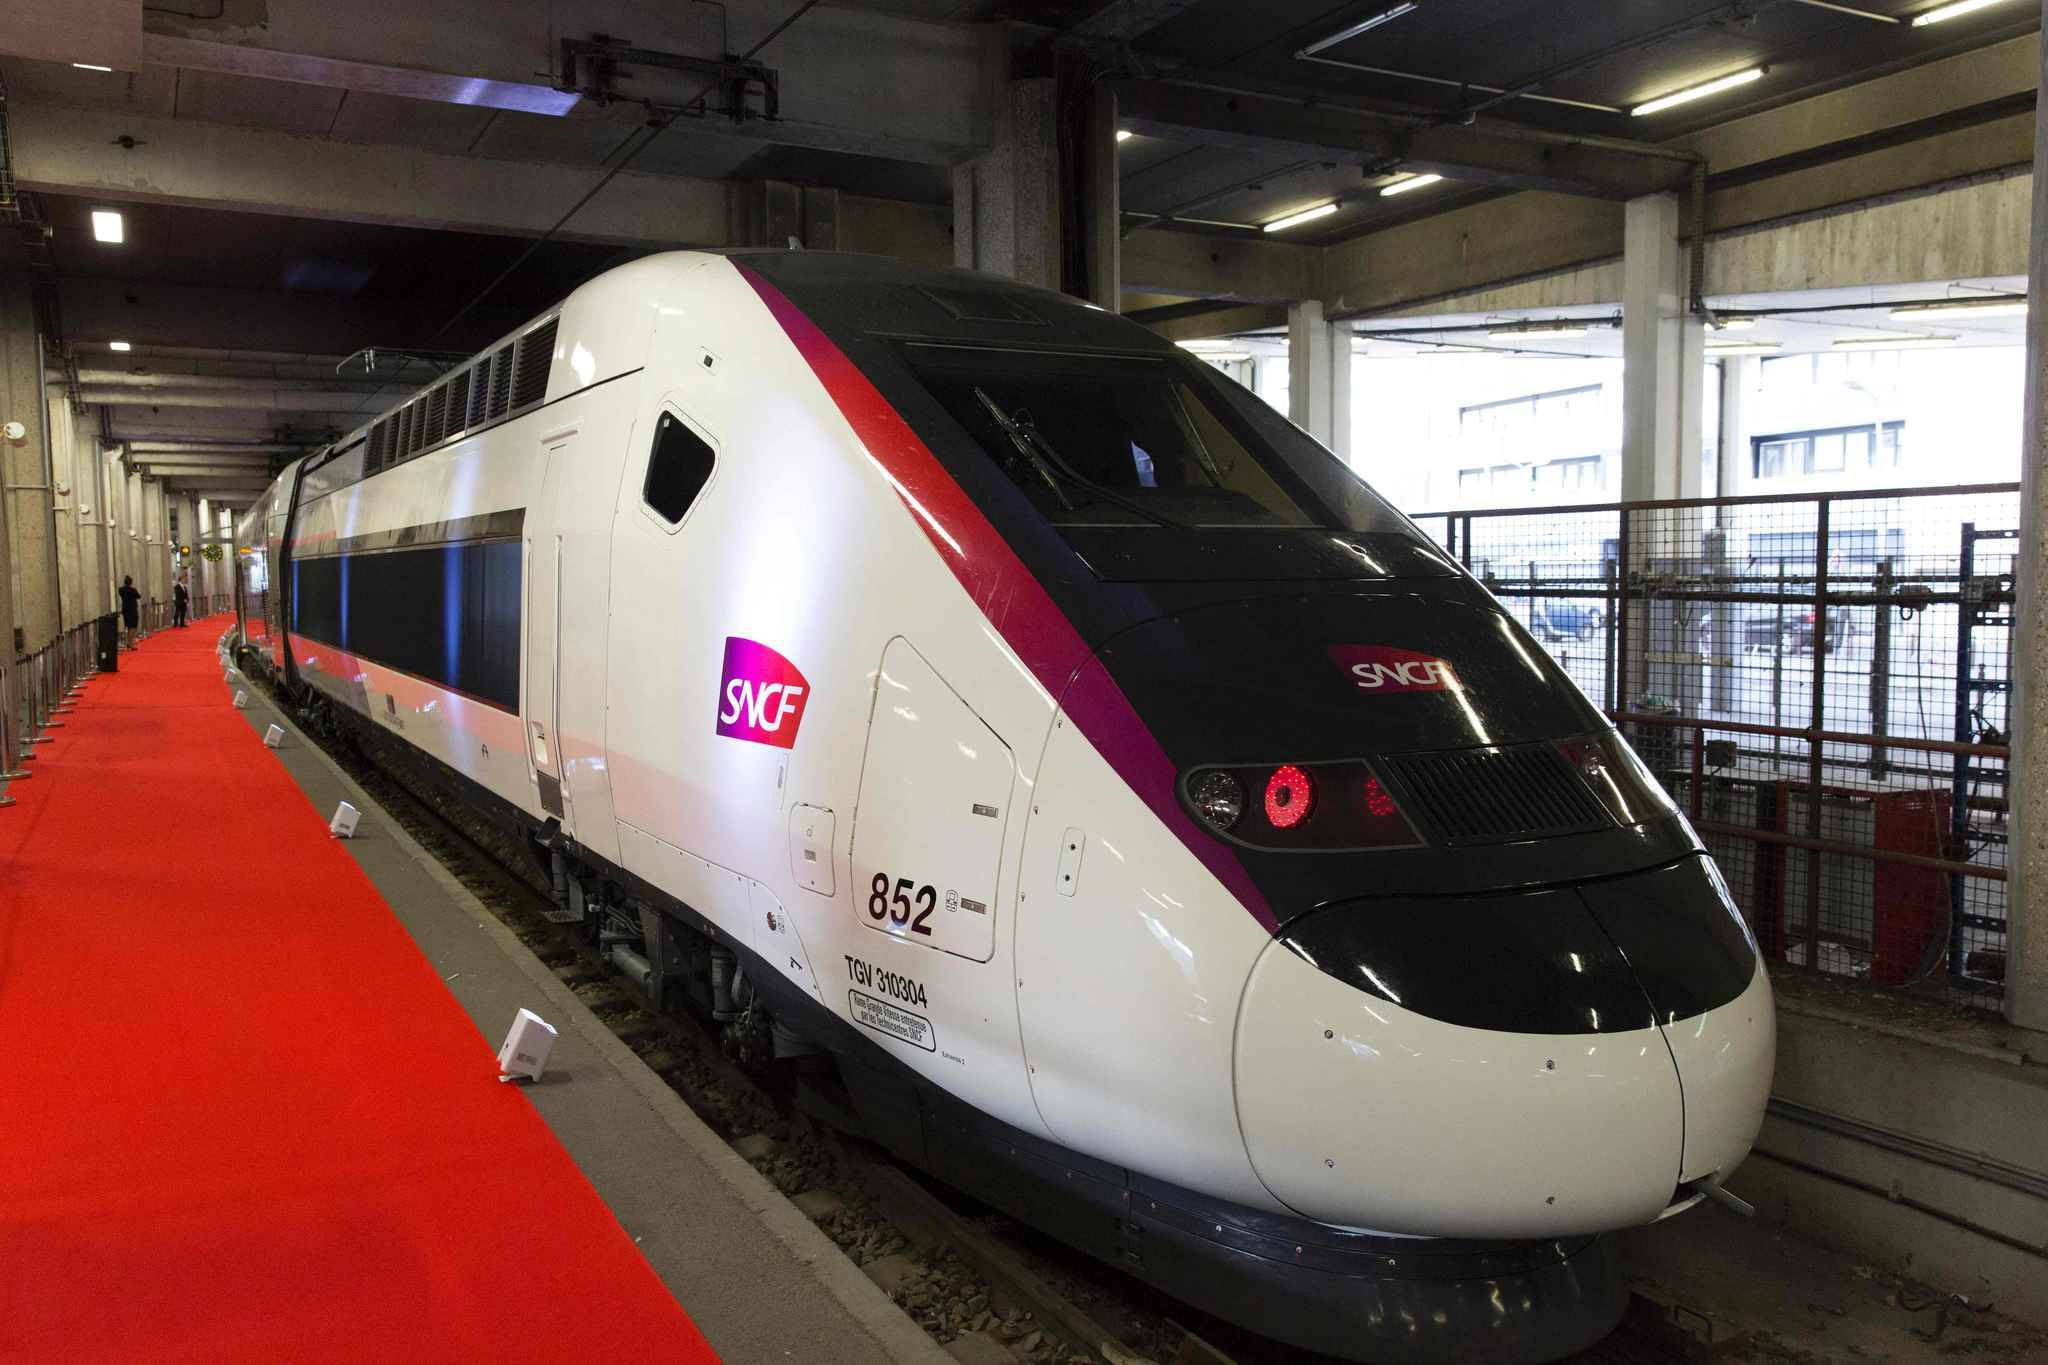 Train Paris Bordeaux from 20 - Timetable & Tickets